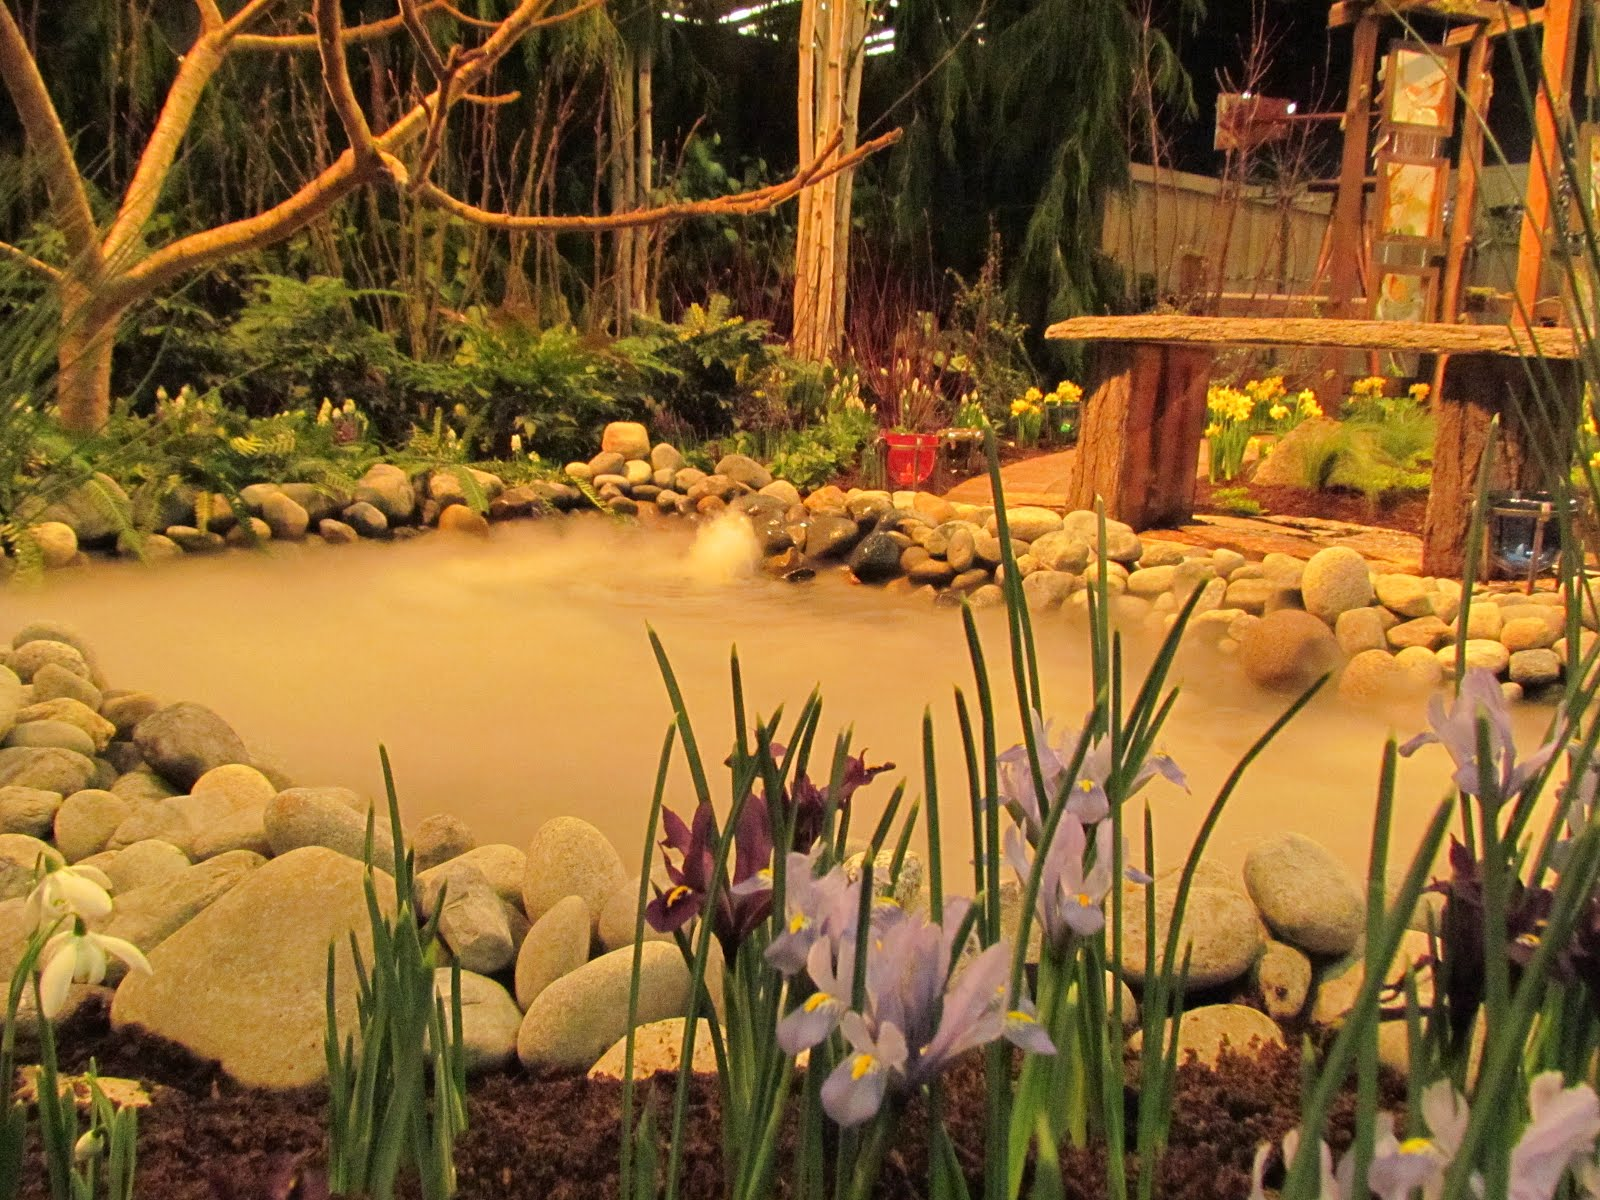 bwisegardening: Brief Reflections from Northwest Flower and Garden Show